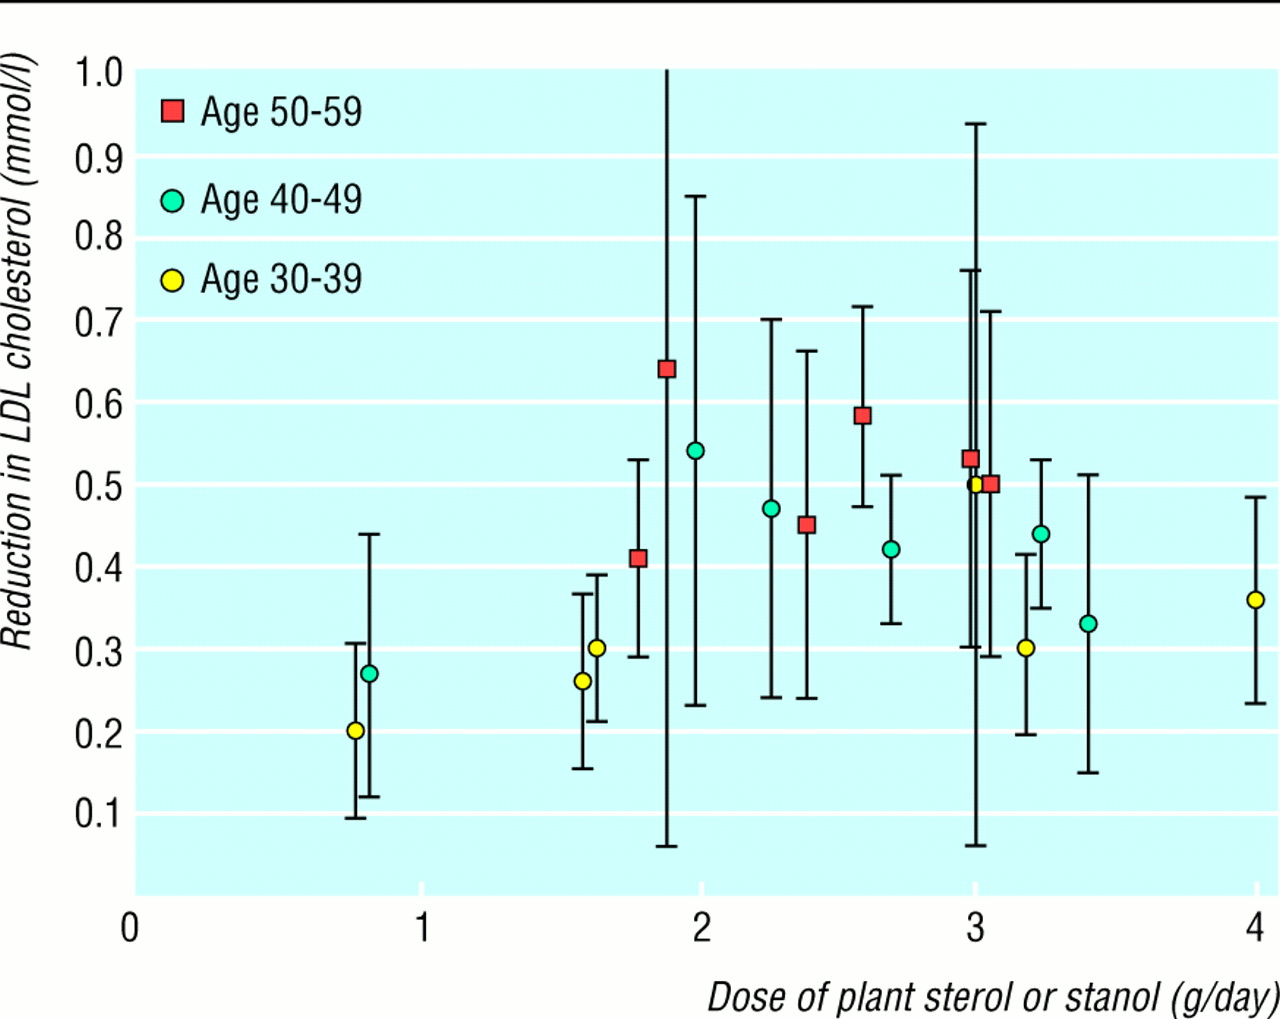 plant sterol and stanol margarines and health the bmj